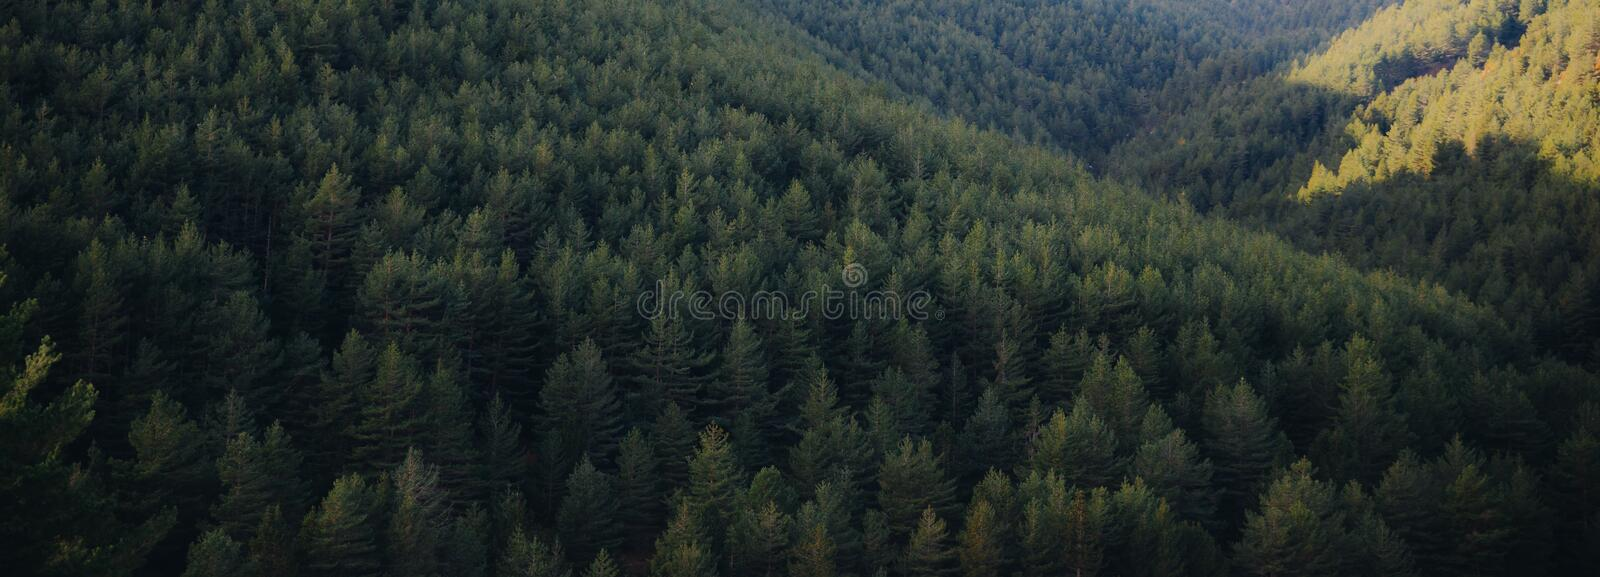 Panoramic landscape of pine tree forest stock images